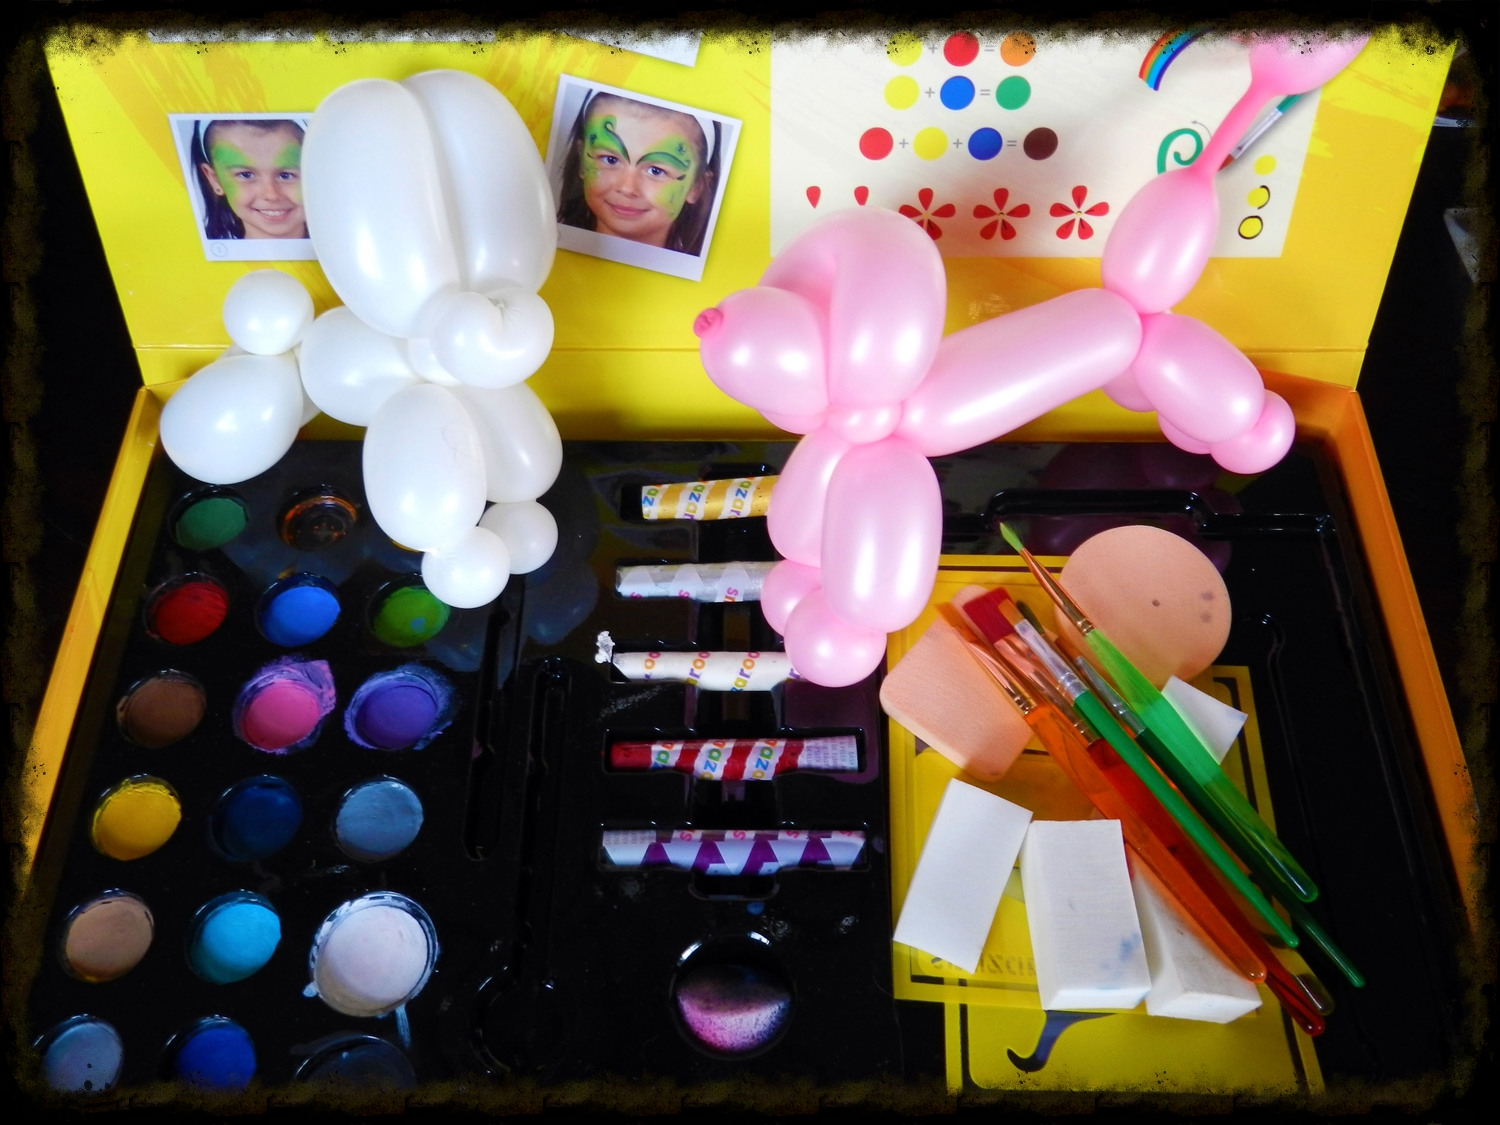 My face paint setup and some balloon friends